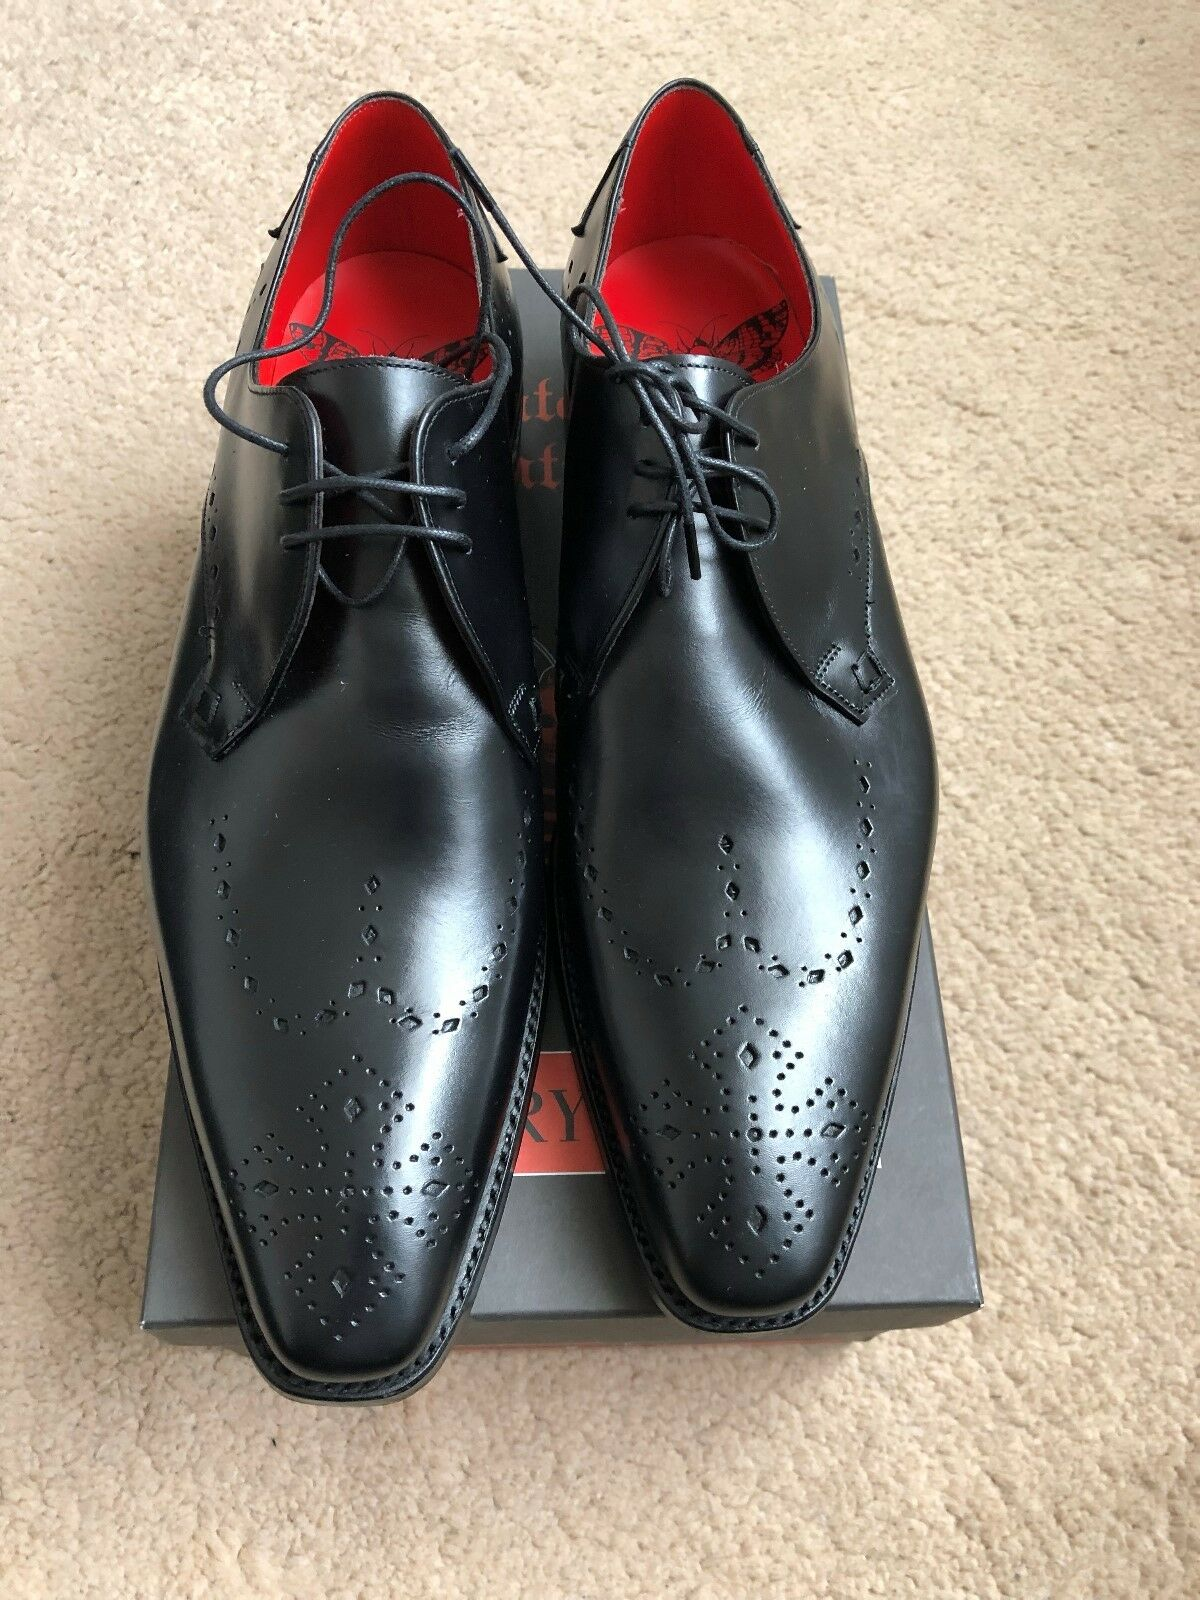 Nouveau Jeffery West 3 Tie Punched Wing Gibson Chaussures UK 7.5 EU 41.5 US 8.5